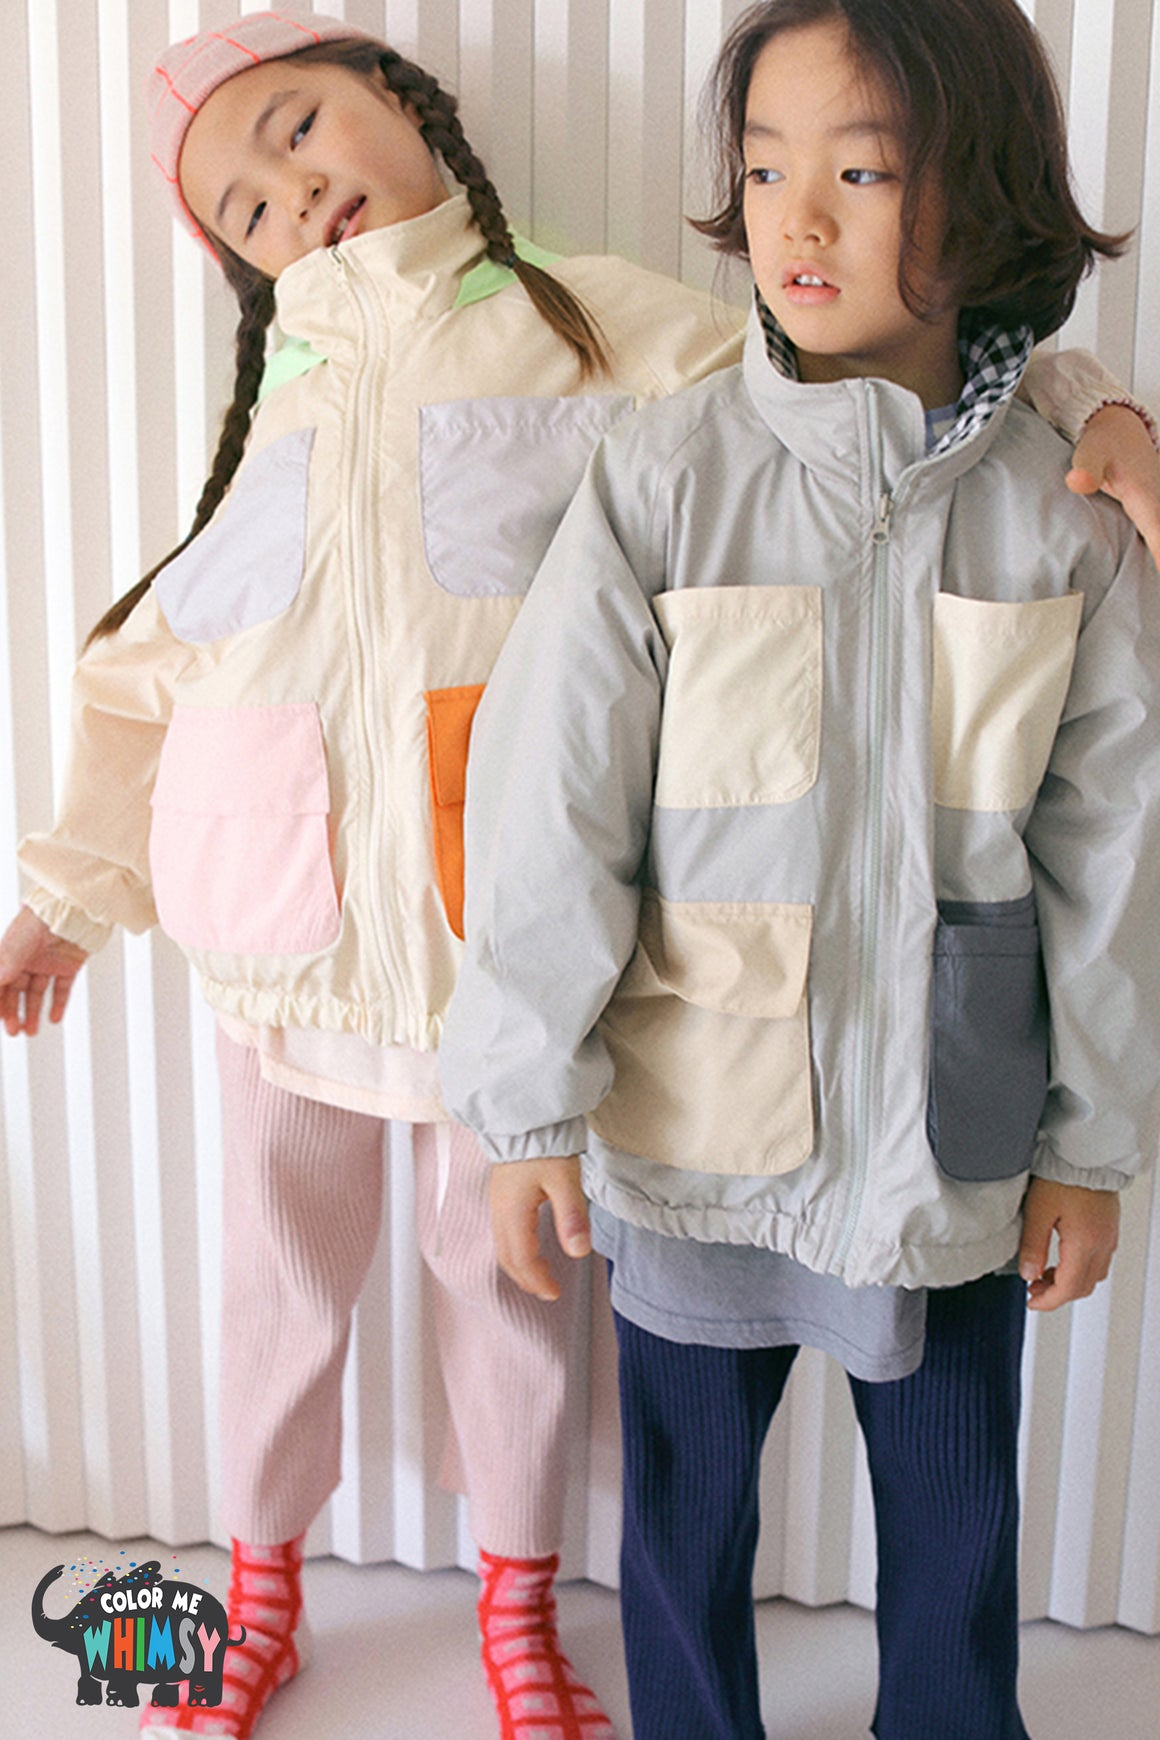 BN Reversible Windbreaker - Two Colors - Color Me WHIMSY